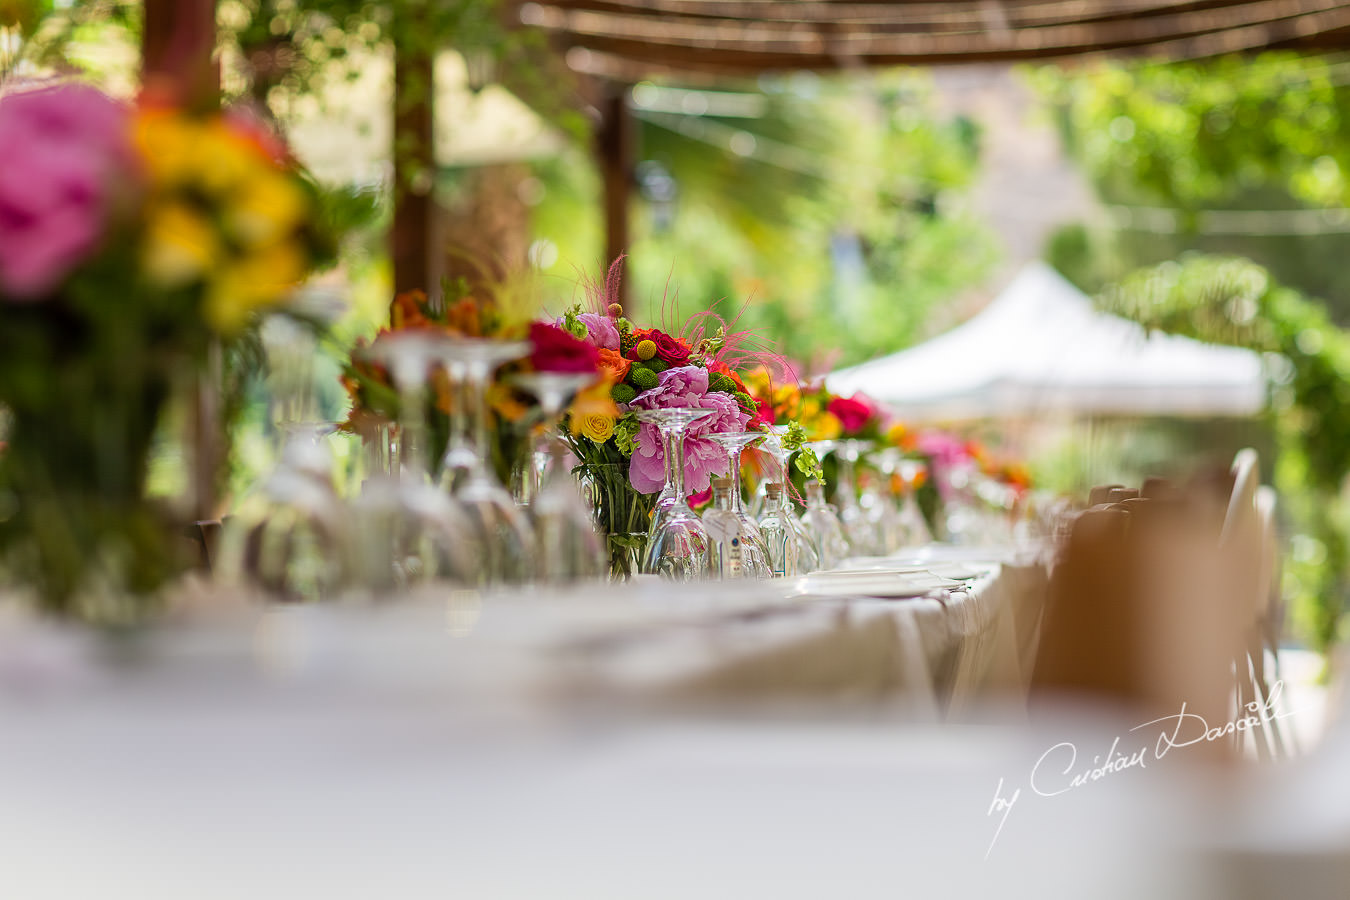 A beautiful wedding day at the Vasilias Nikoklis Inn in Paphos, captured by Cristian Dascalu. The dinner's table.